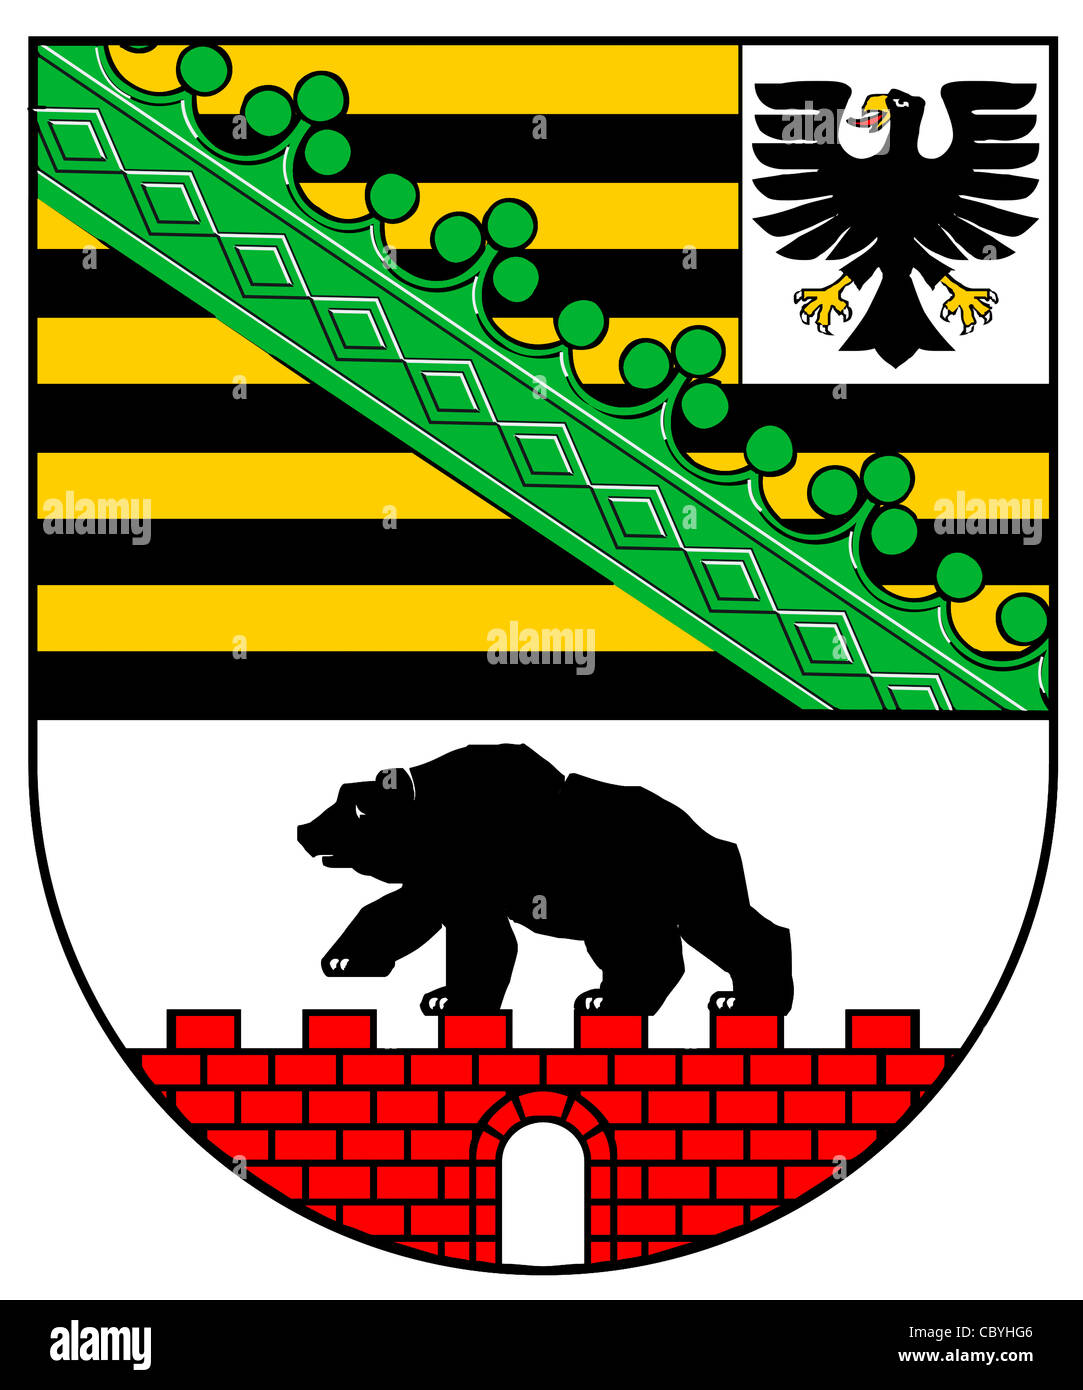 Coat of arms of the German federal state Saxony-Anhalt. - Stock Image